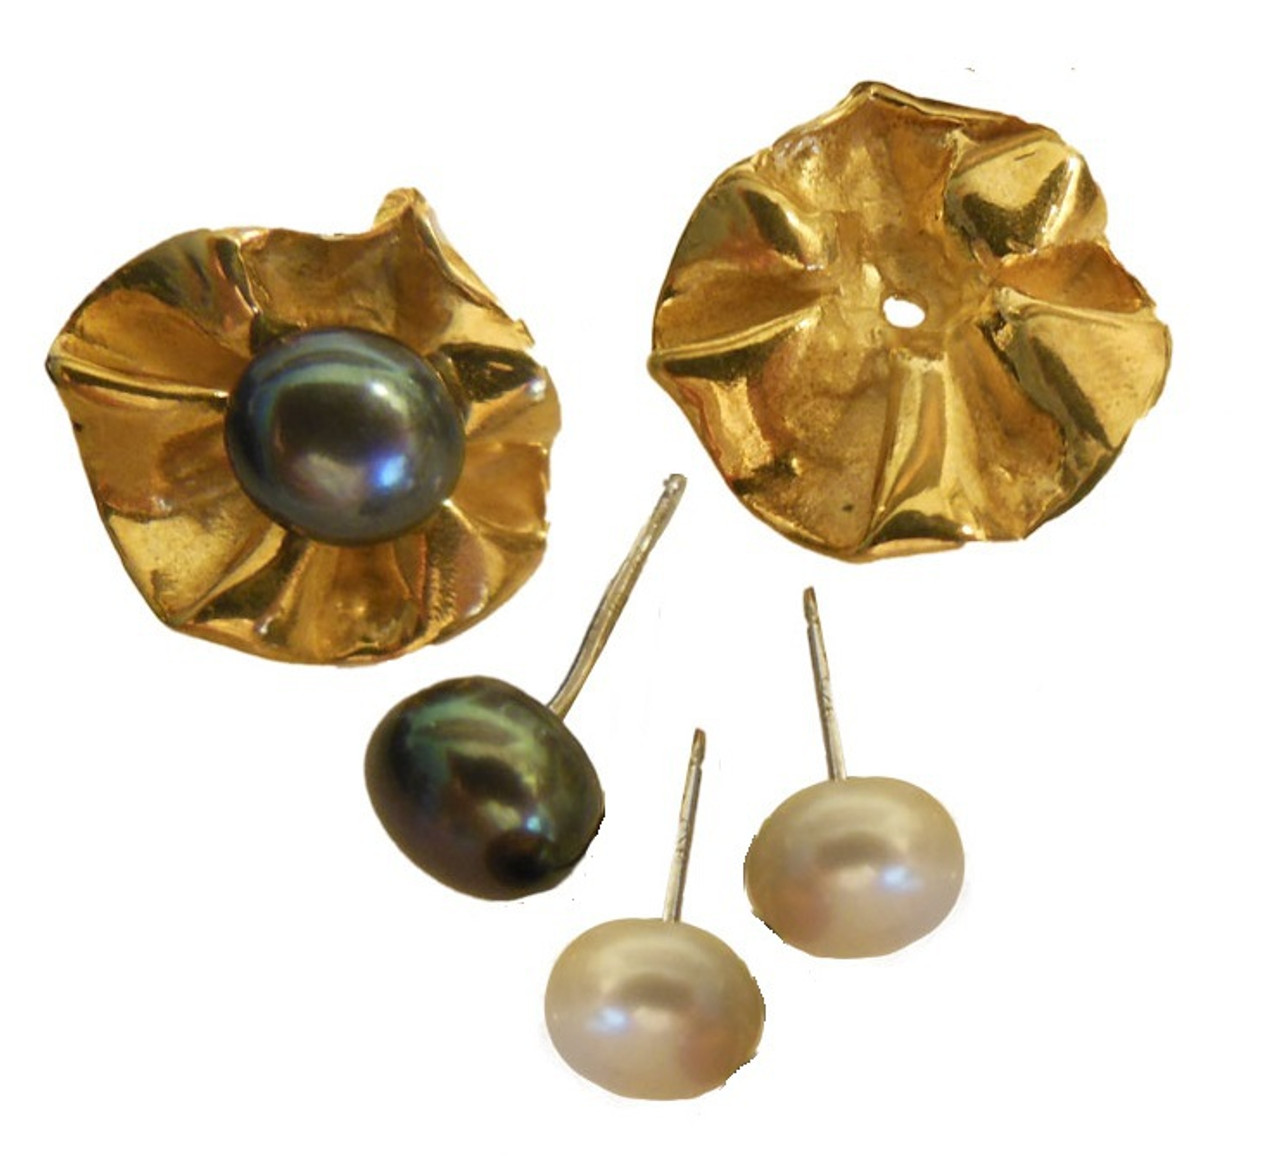 Ruffle Earring Jackets with 2 pearl stud earrings.   Silver with rhodium or 18K gold plate.